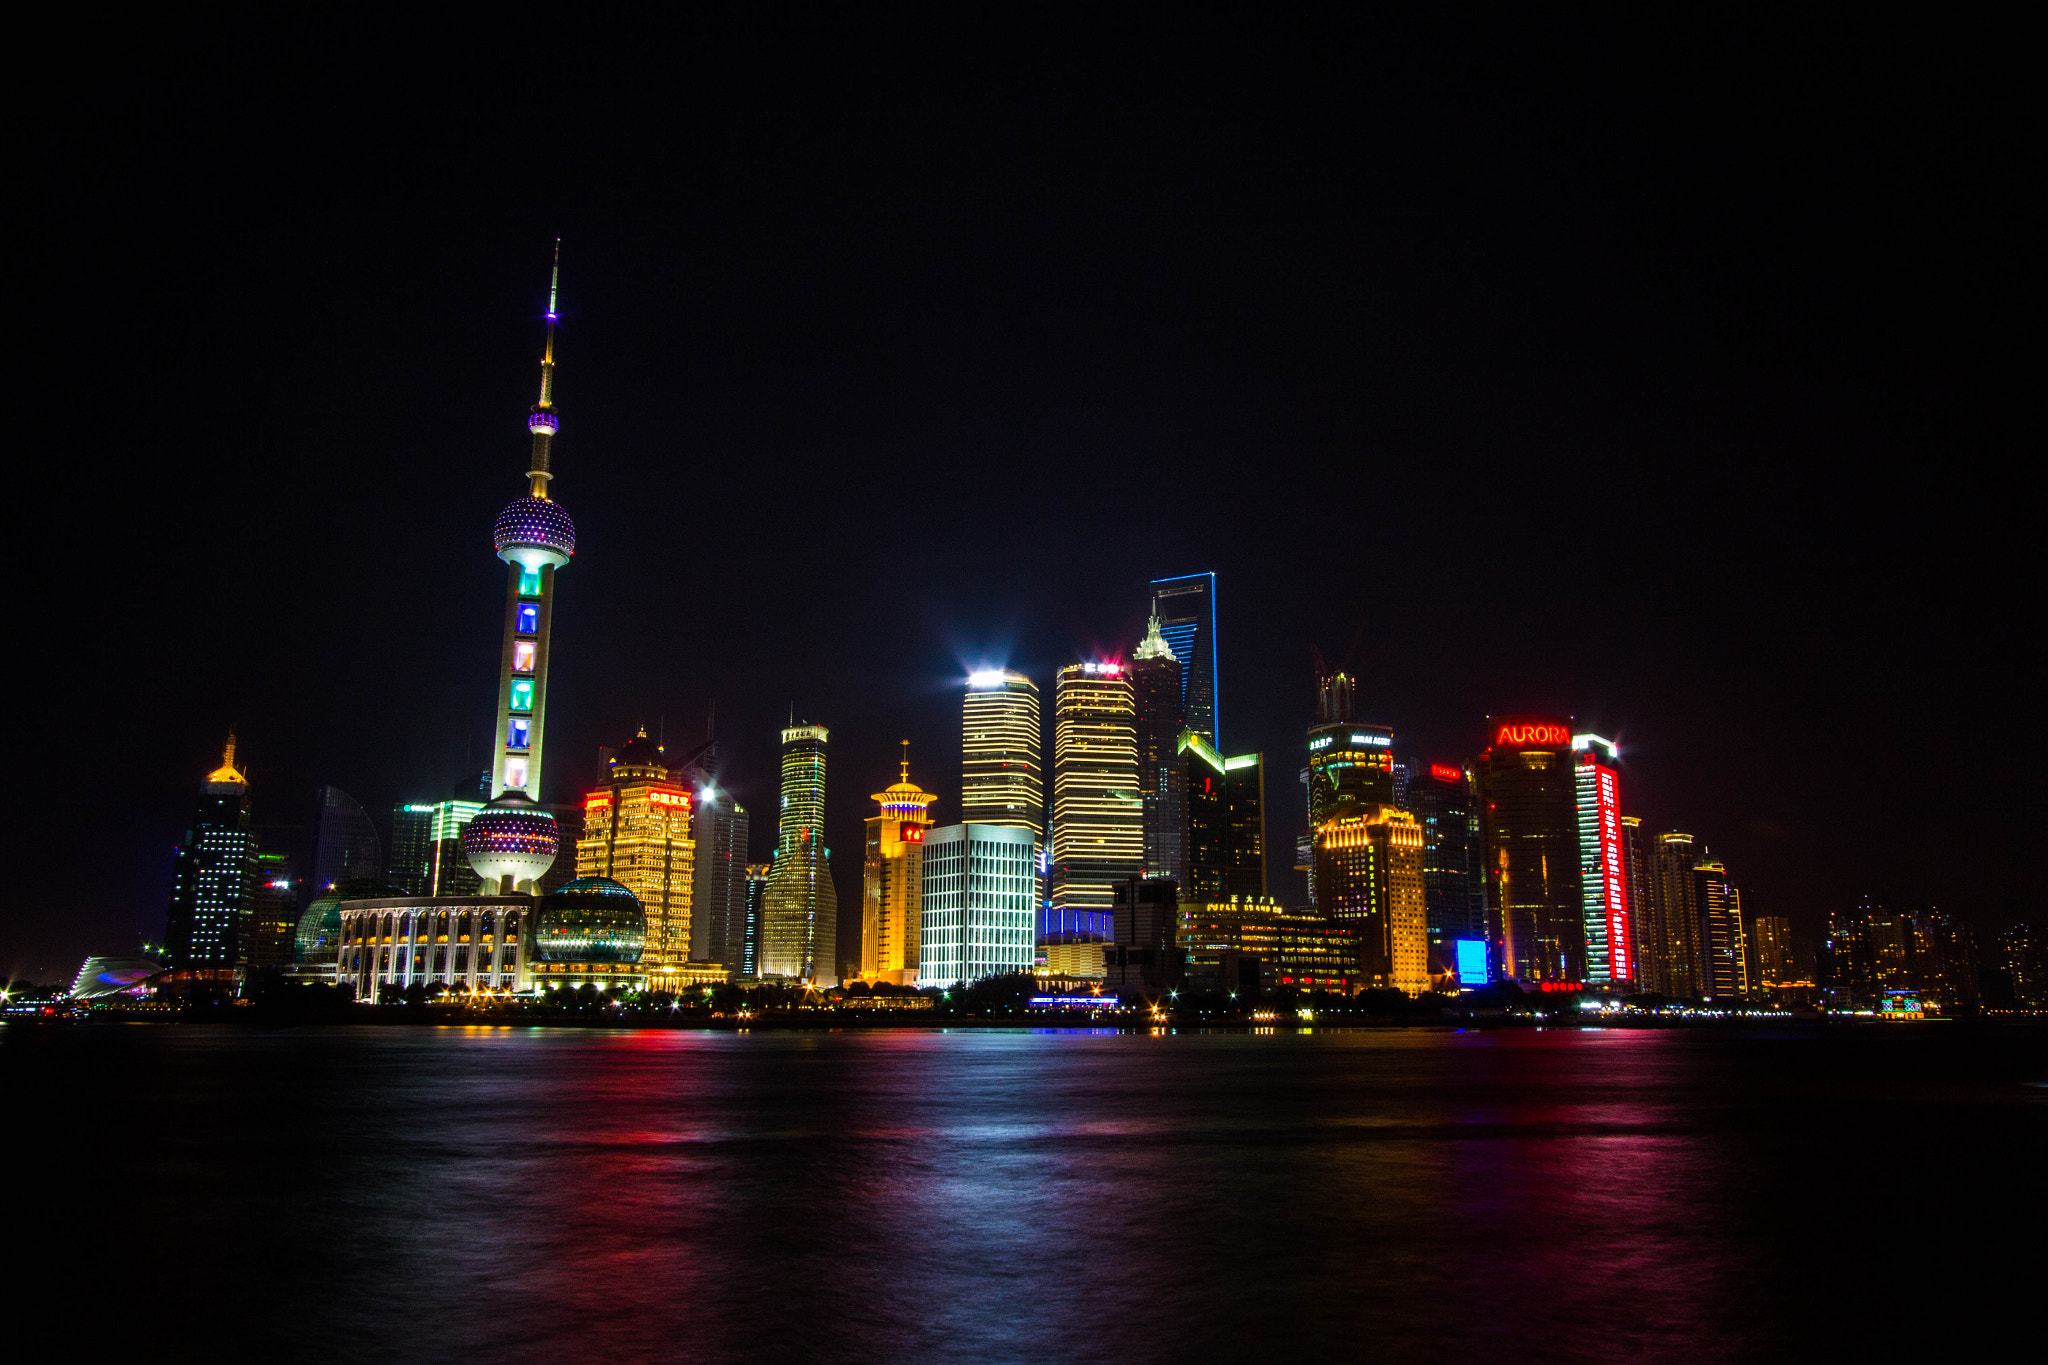 Photograph Pudong Nightscape by Kevin Yang on 500px